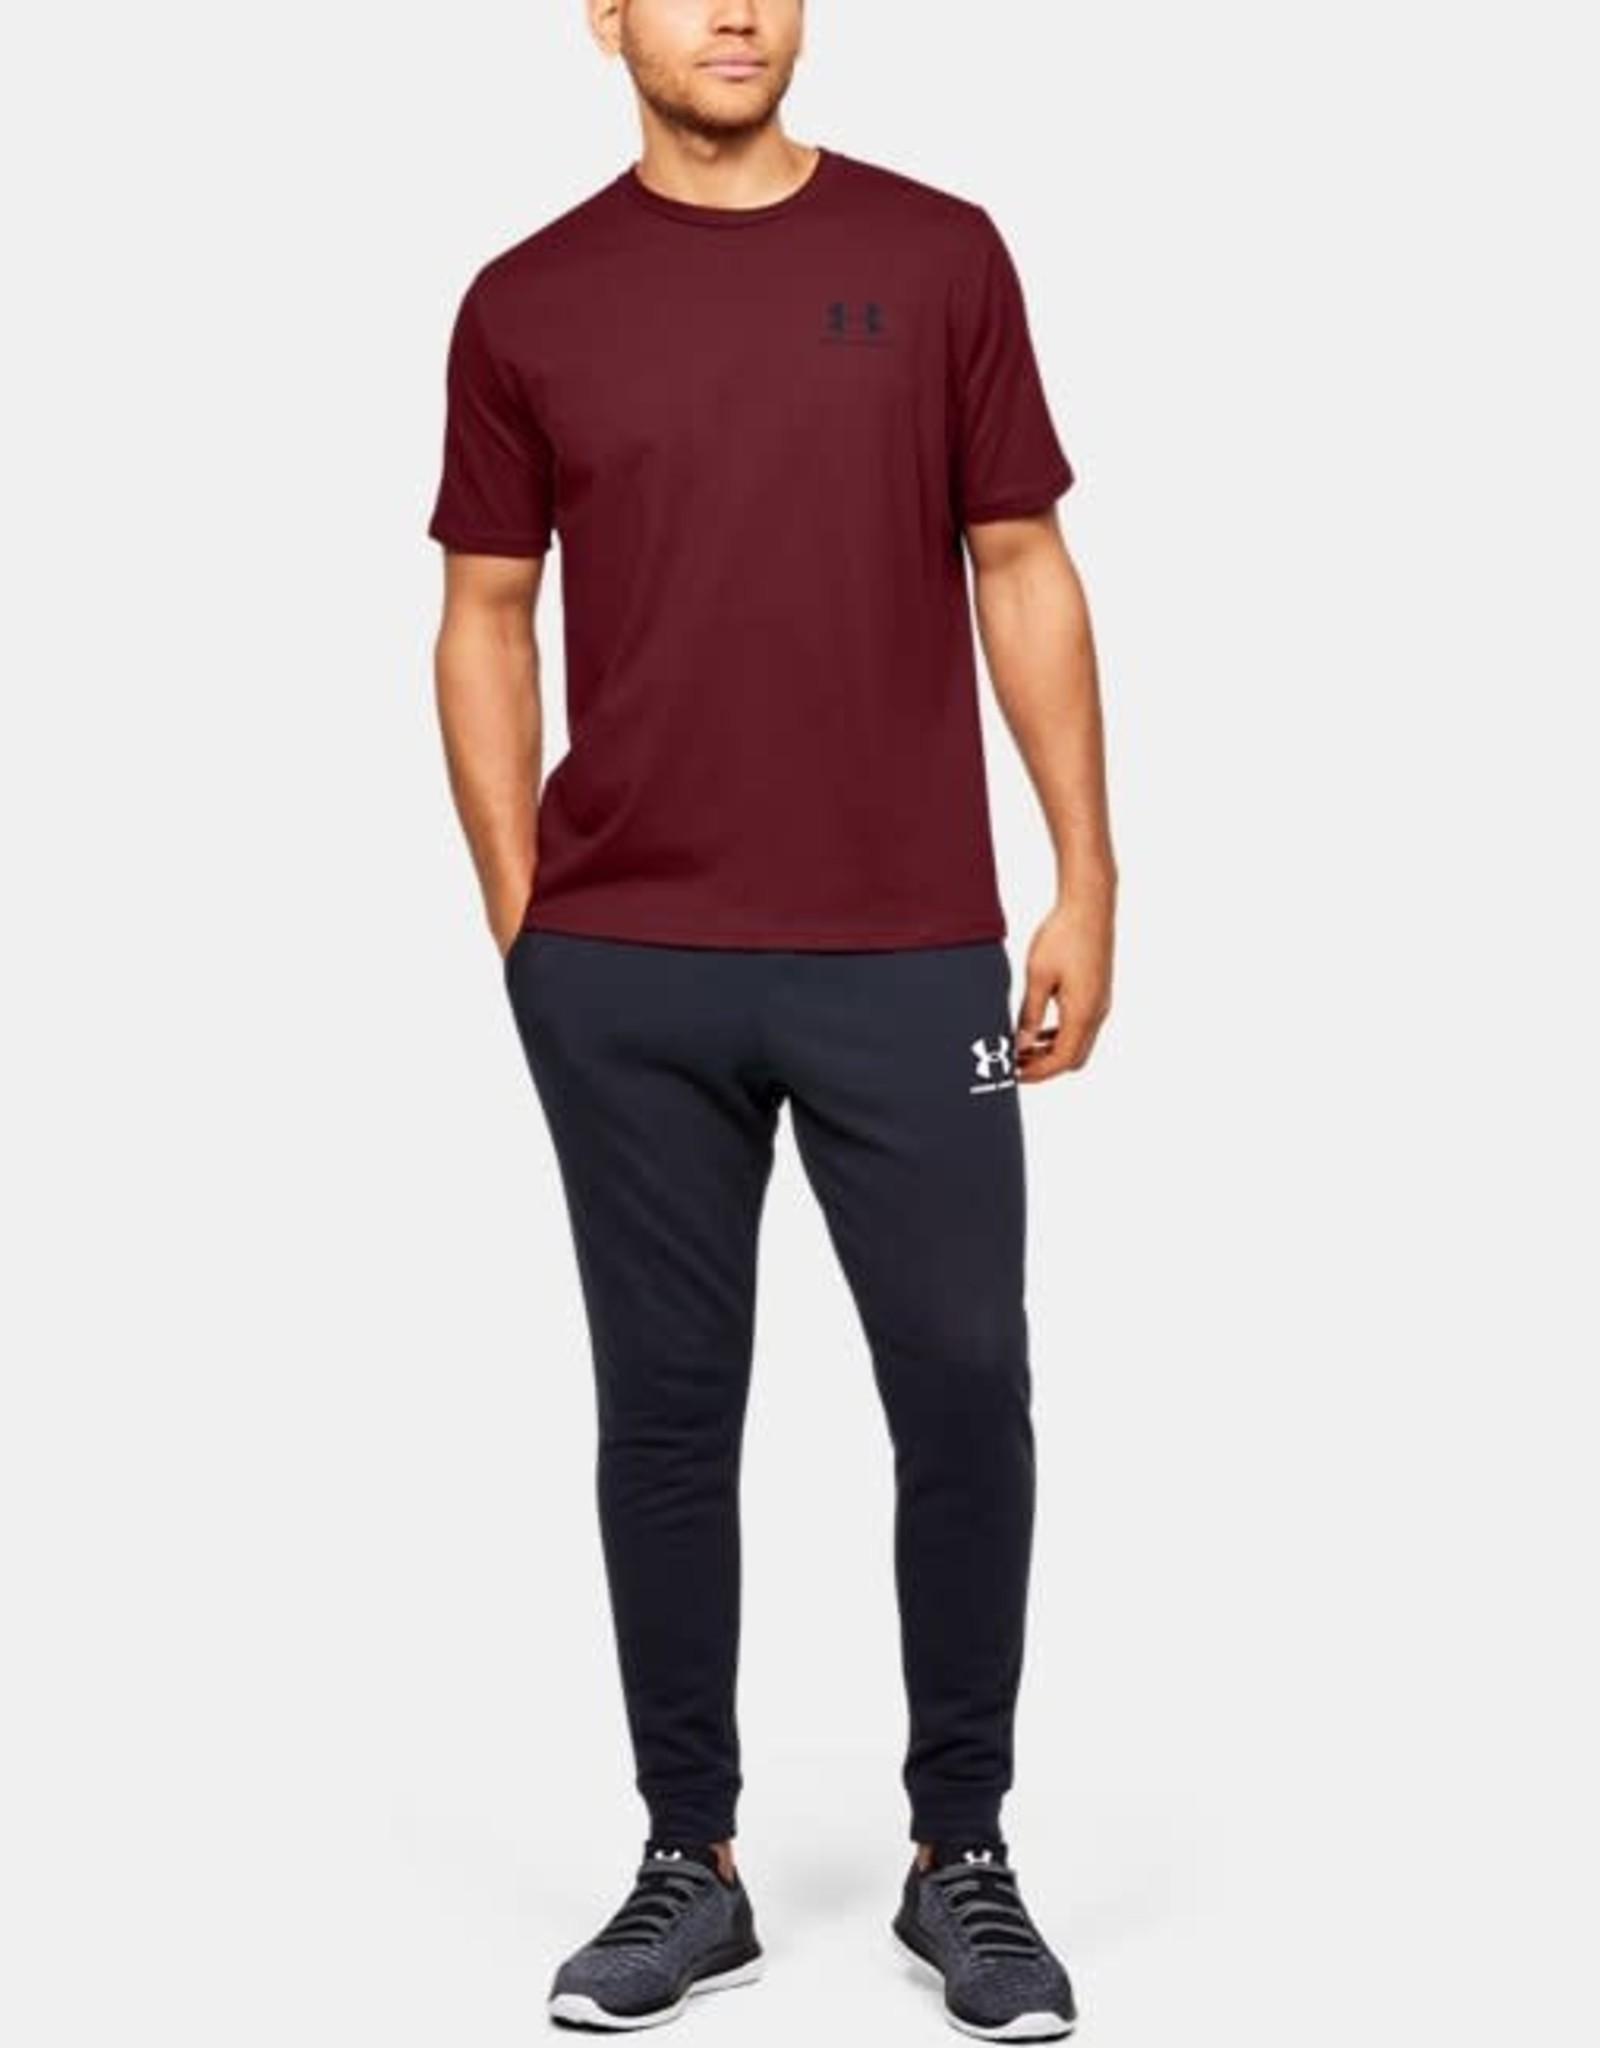 Under Armour Sportstyle left chest tee - red